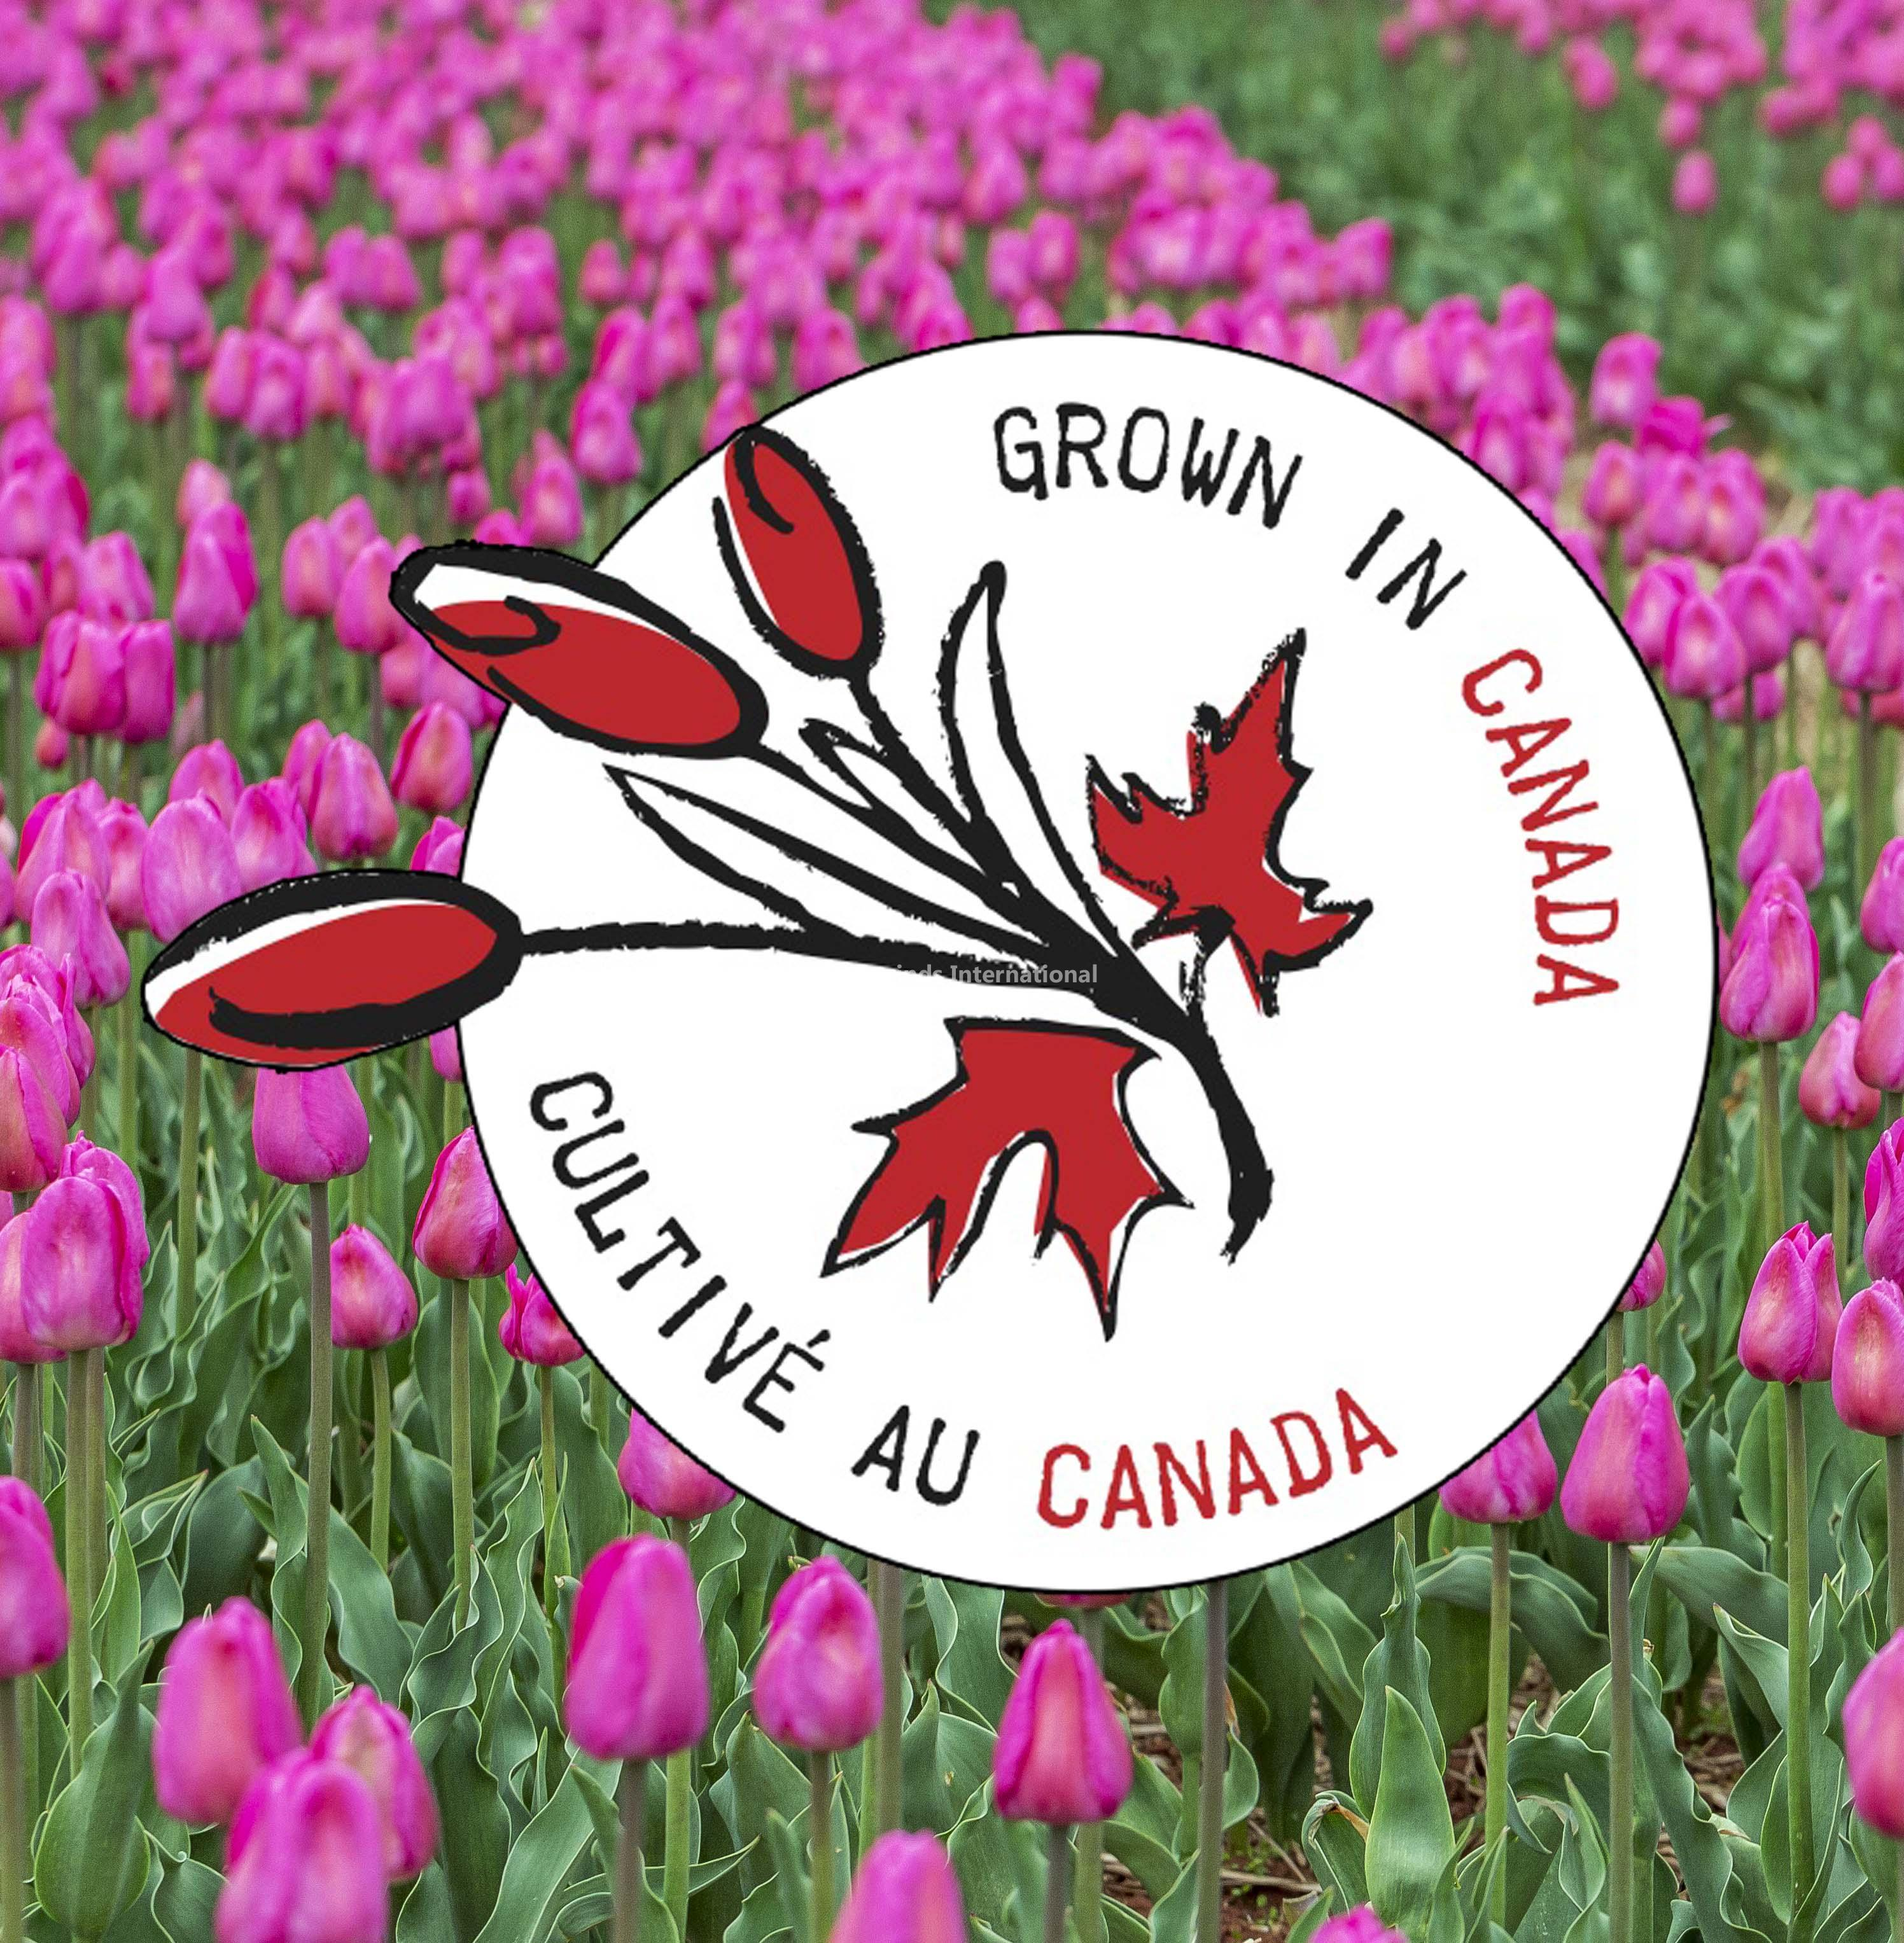 Grown in Canada